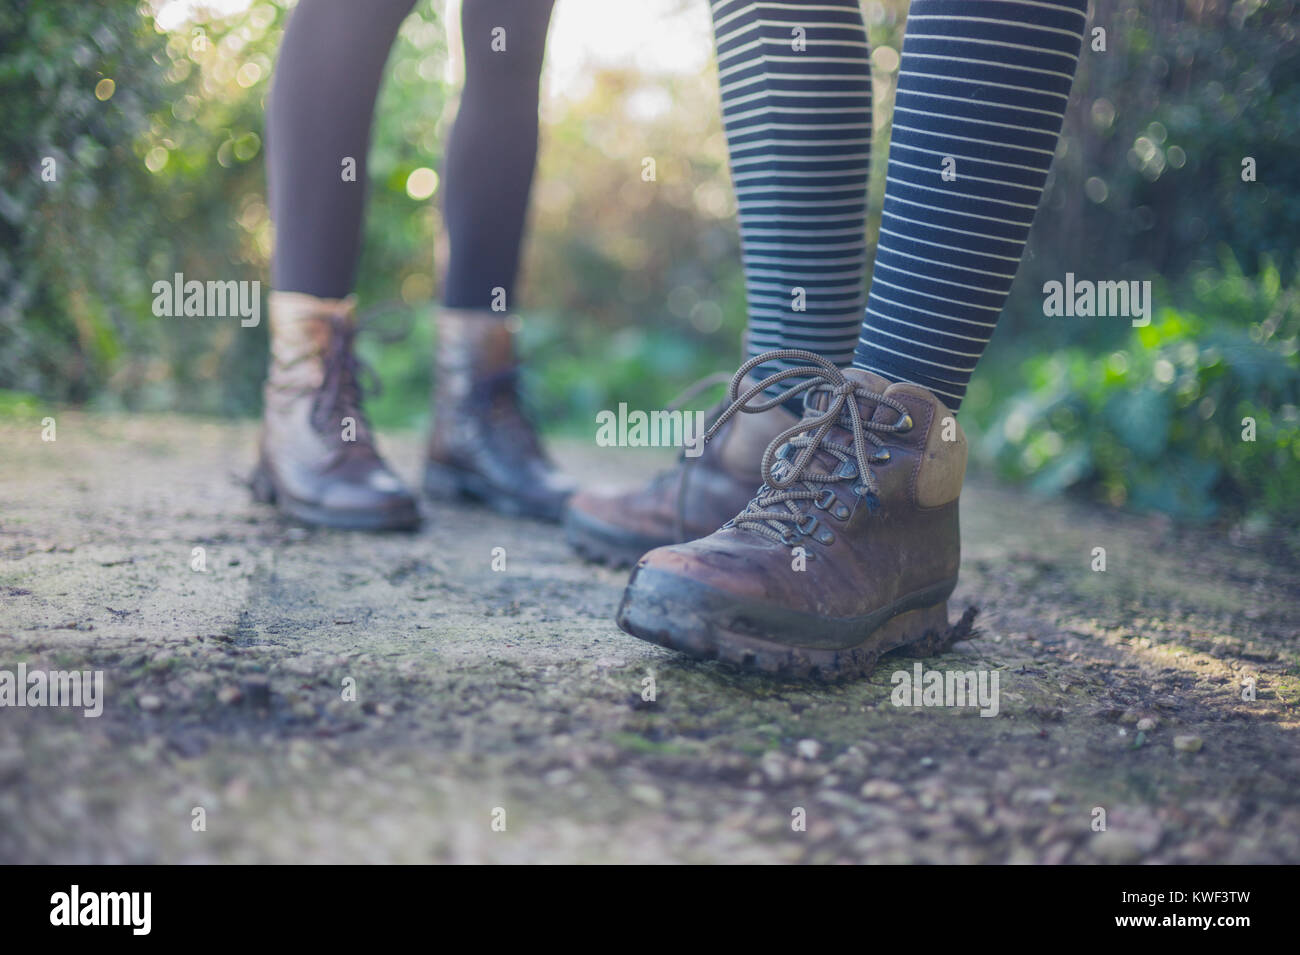 The shoes and feet of two young women standing outside in nature - Stock Image